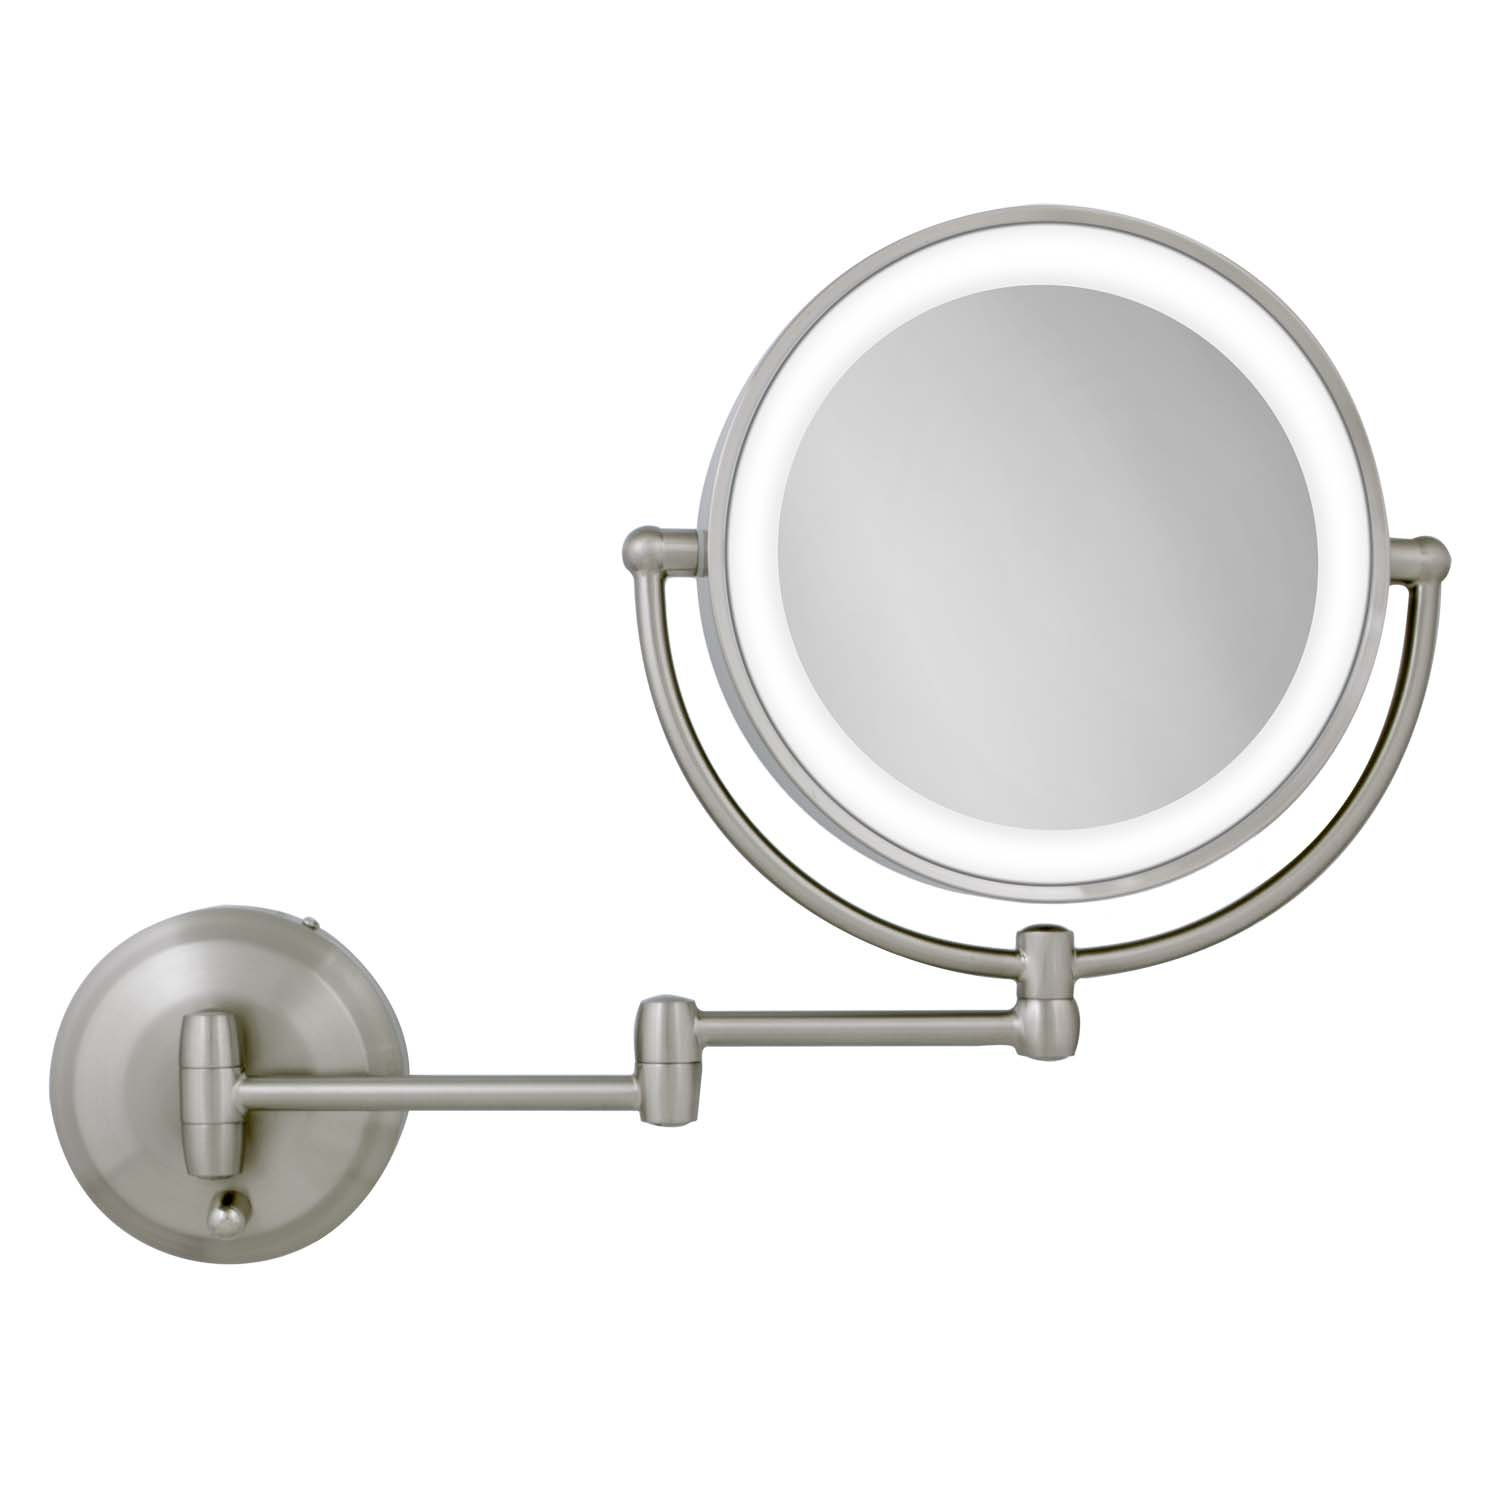 Buy Zadro Led Lighted Wall Mount Mirror 1x To 10x Model